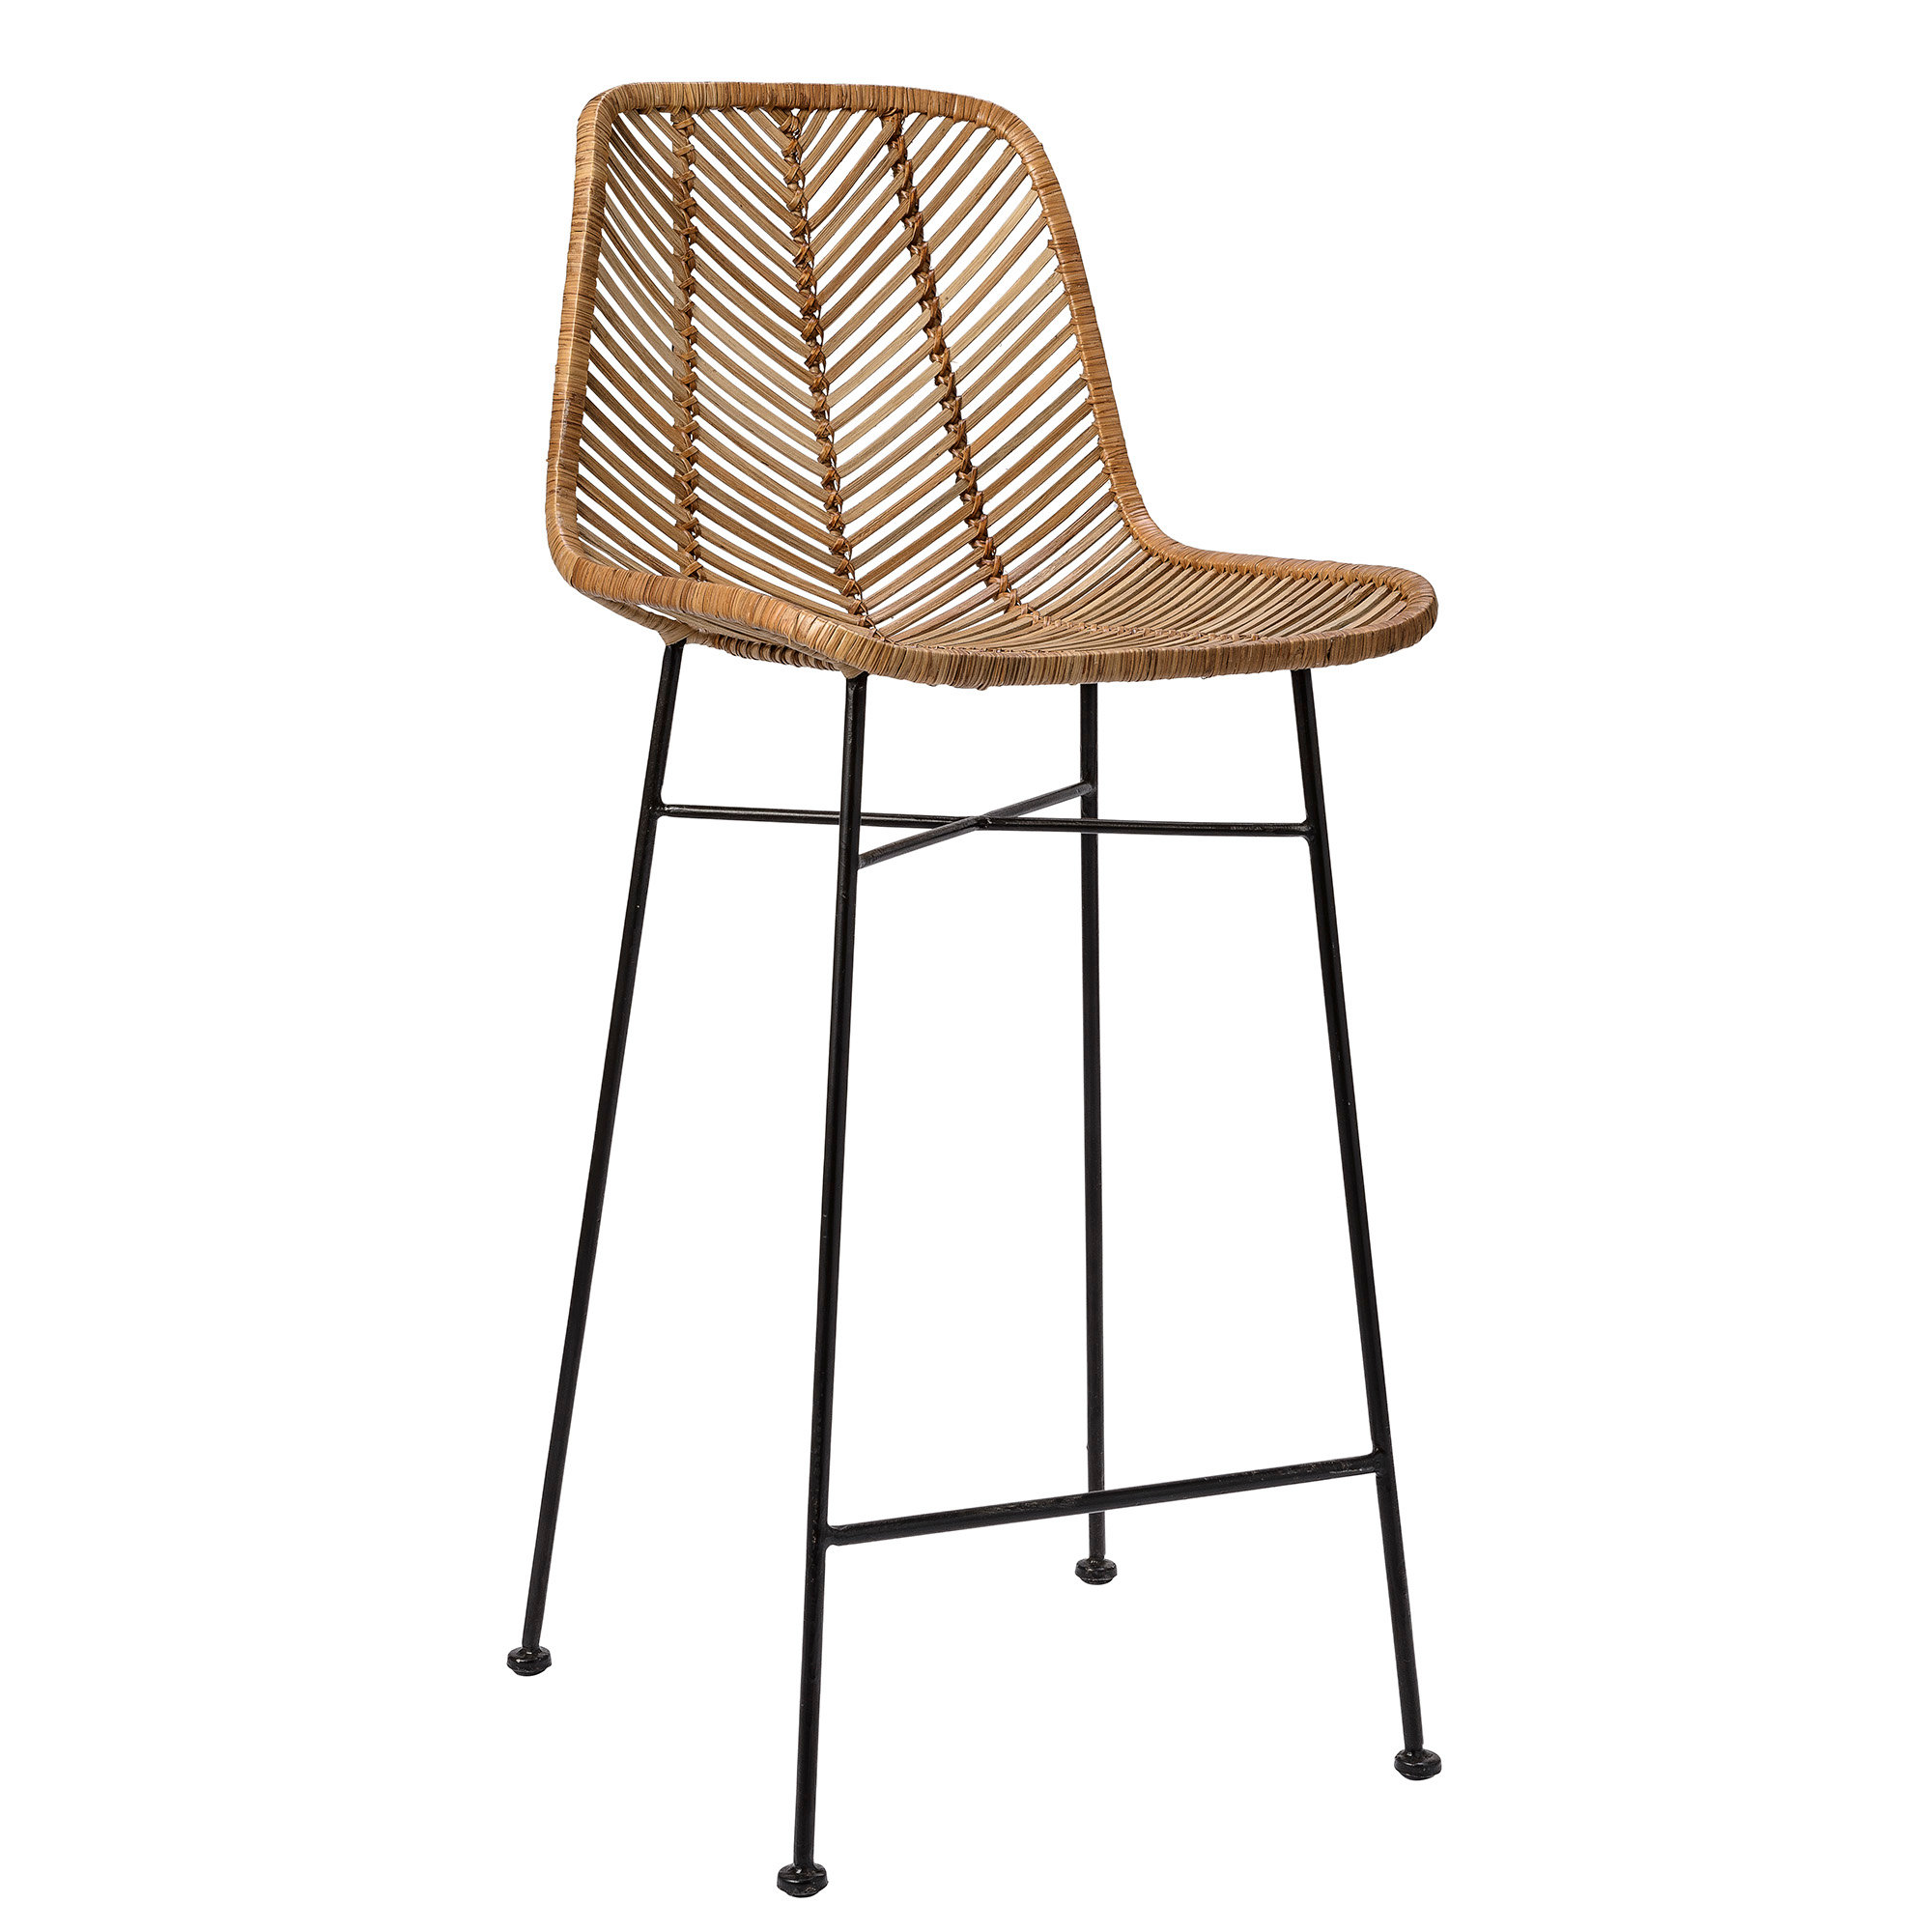 Picture of: Black Woven Rattan Bar Stool